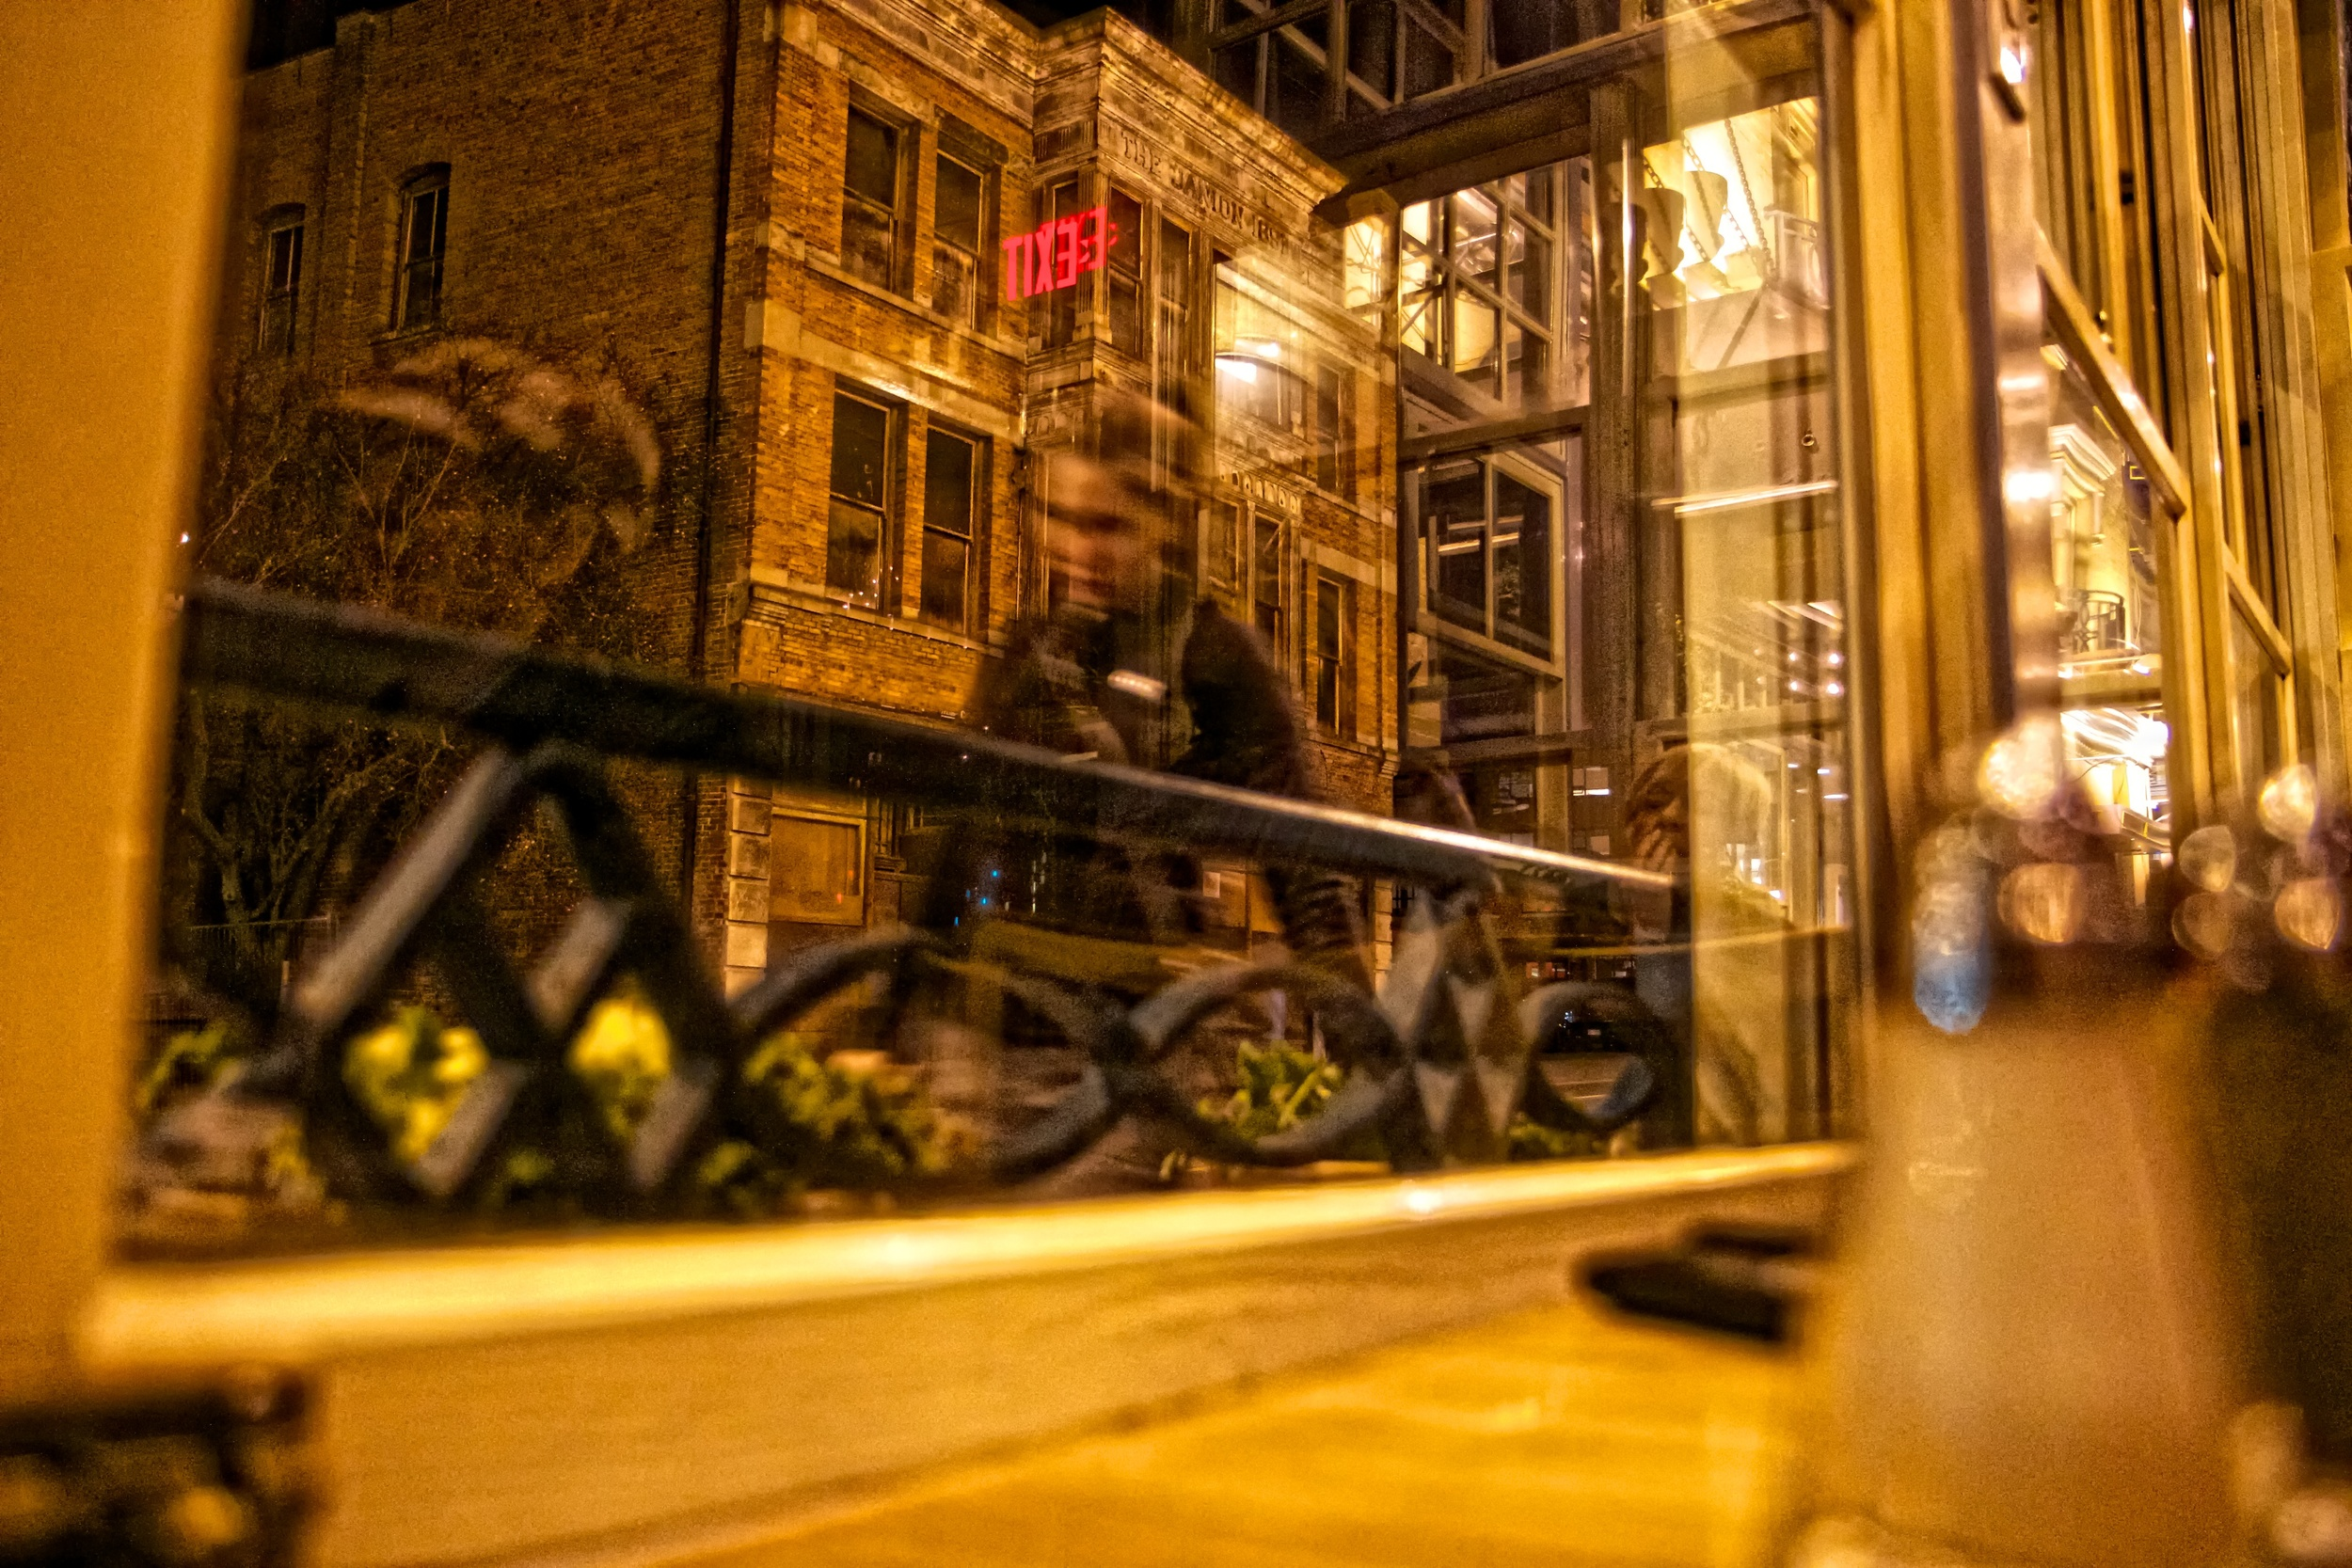 2013-02-23 at 20-42-16 Brick, City, NIght, Old Buildingff, Pedestrian, Reflection, Restaurant, Urban, Window.jpg